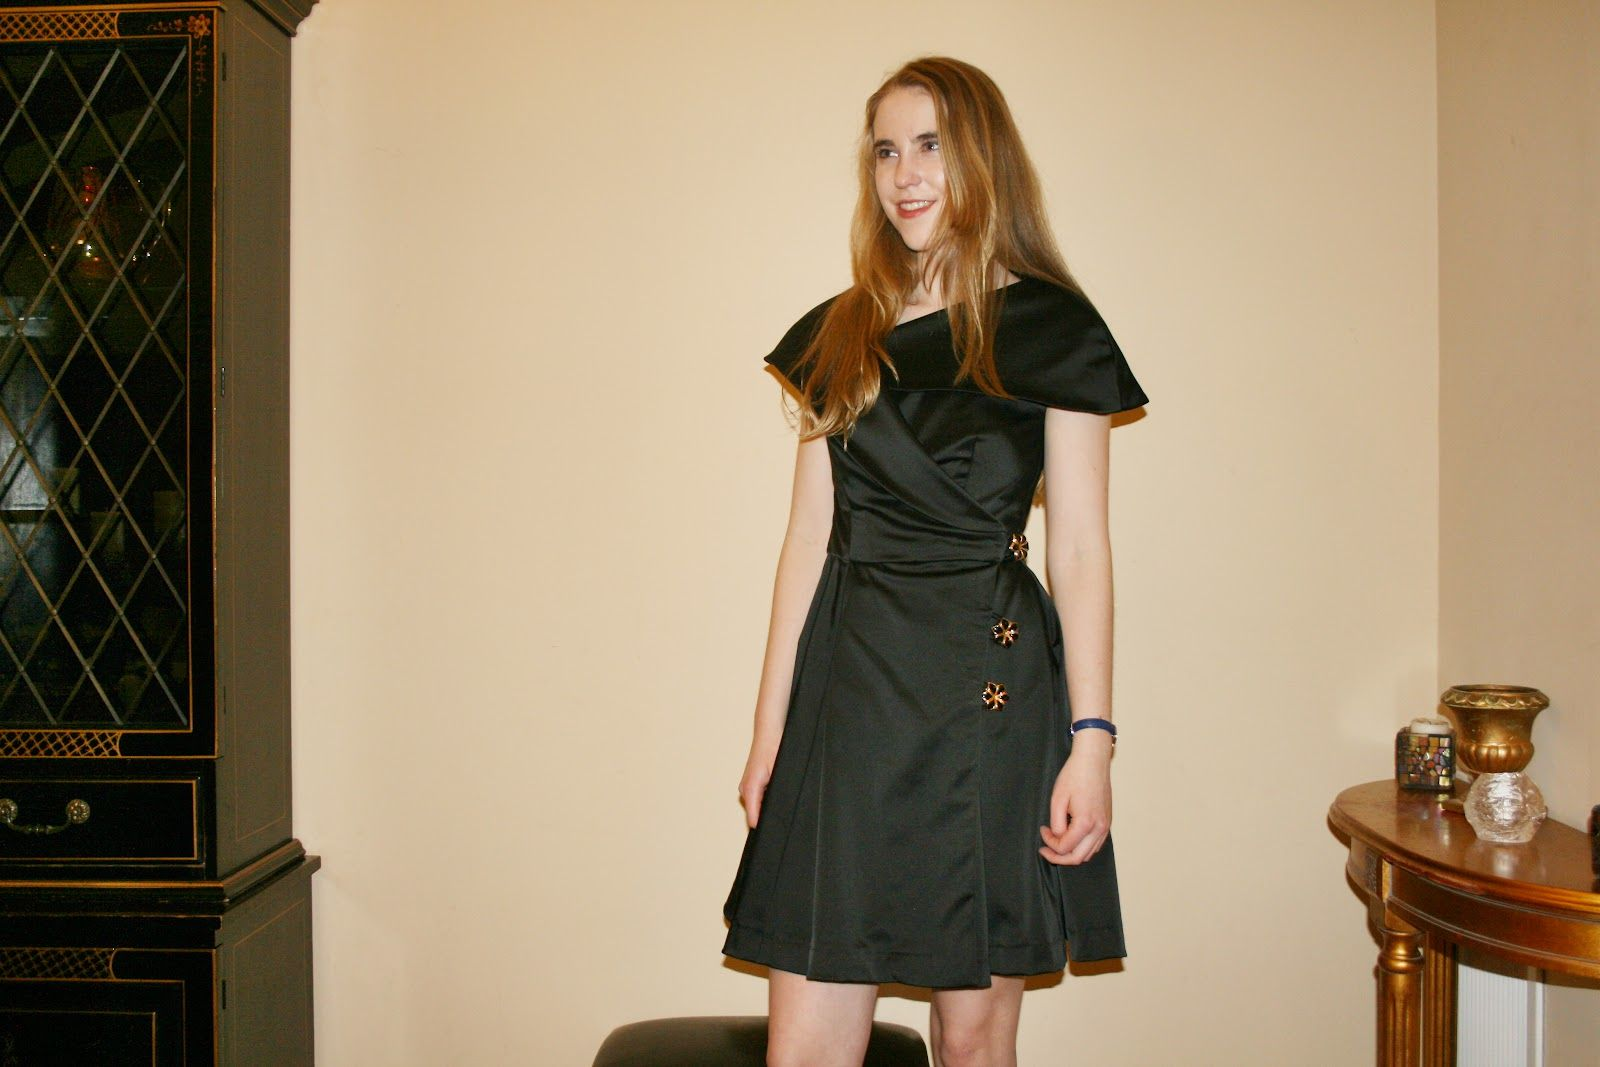 A dress made from a coat pattern!